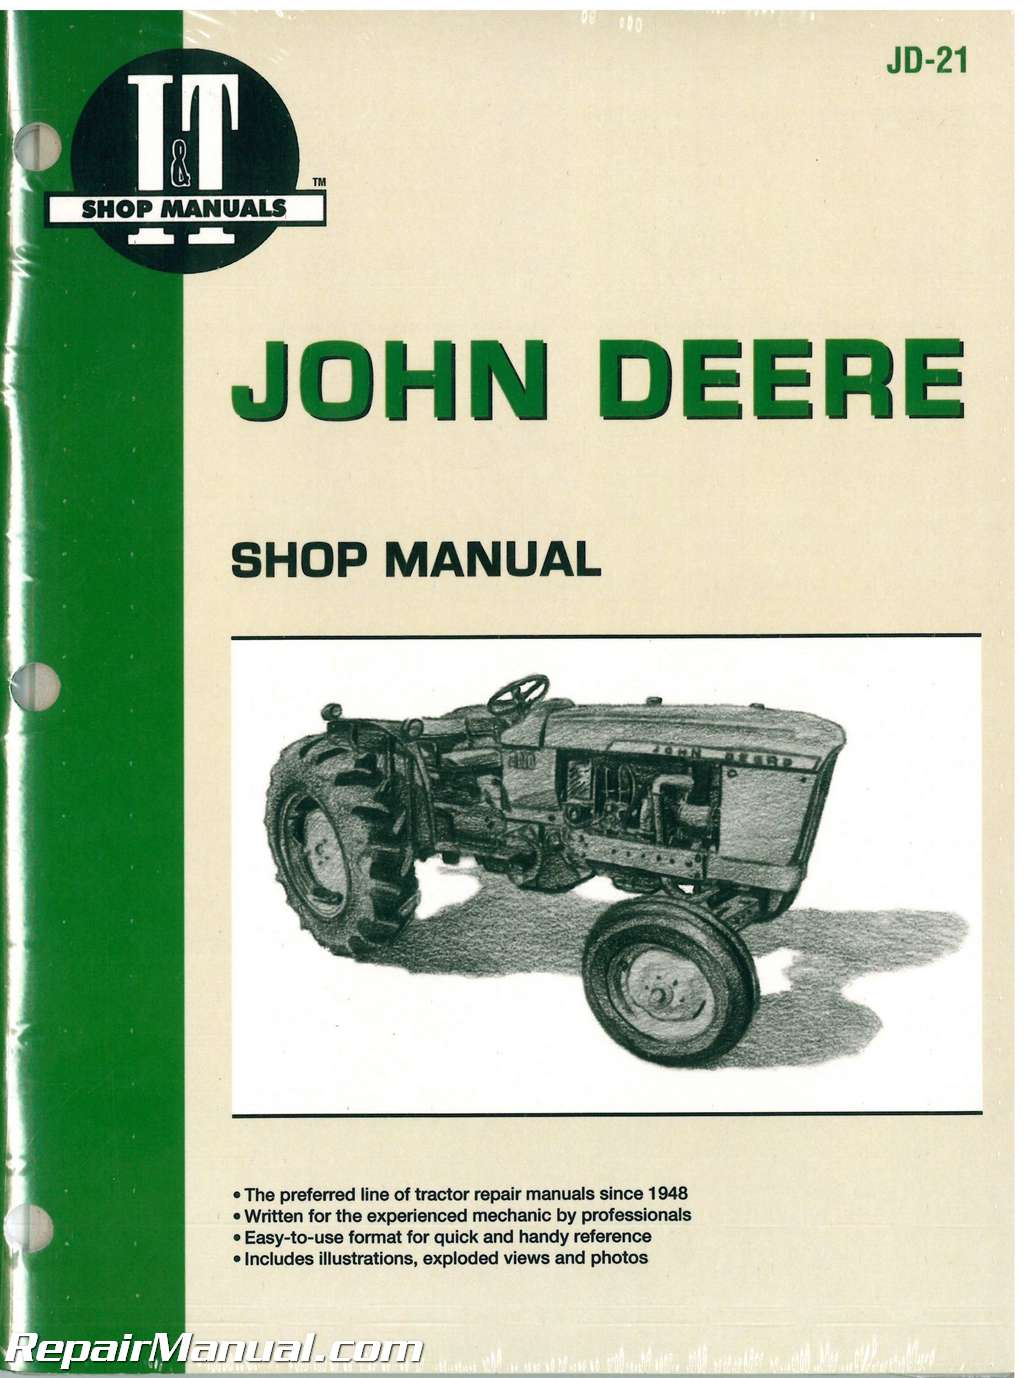 Oregon John Deere Parts Diagram For John Deere Manual Guide